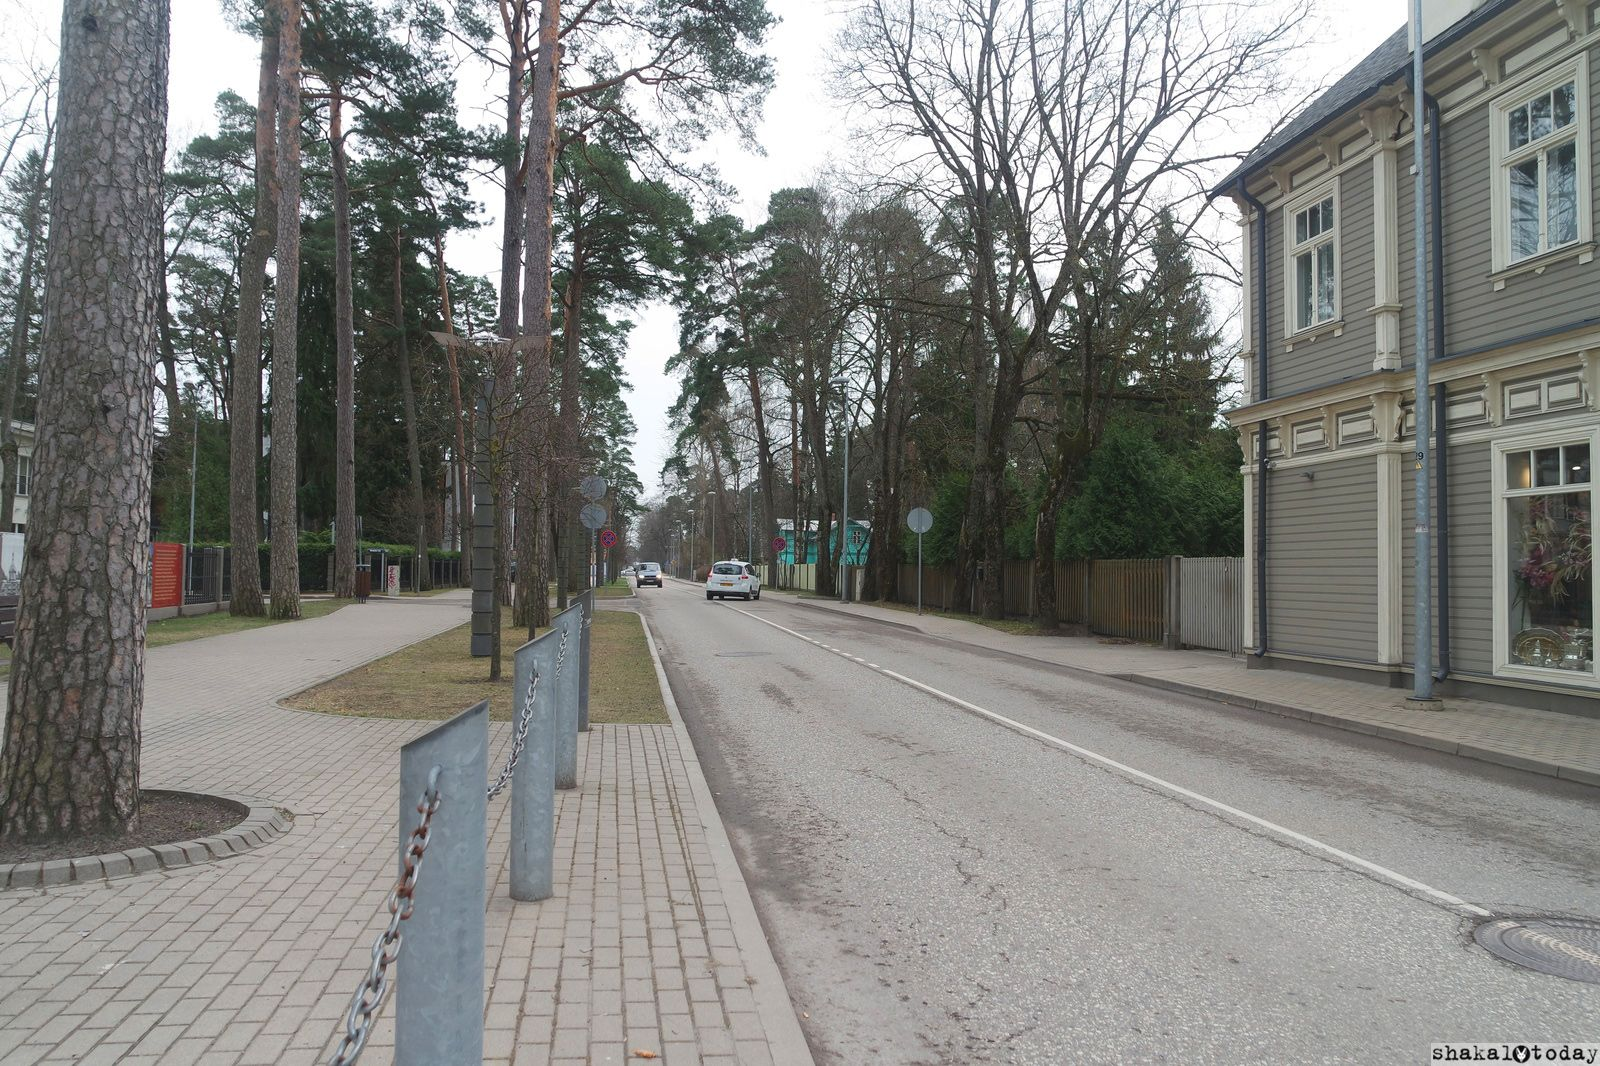 jurmala-shakal-today-0025.jpg